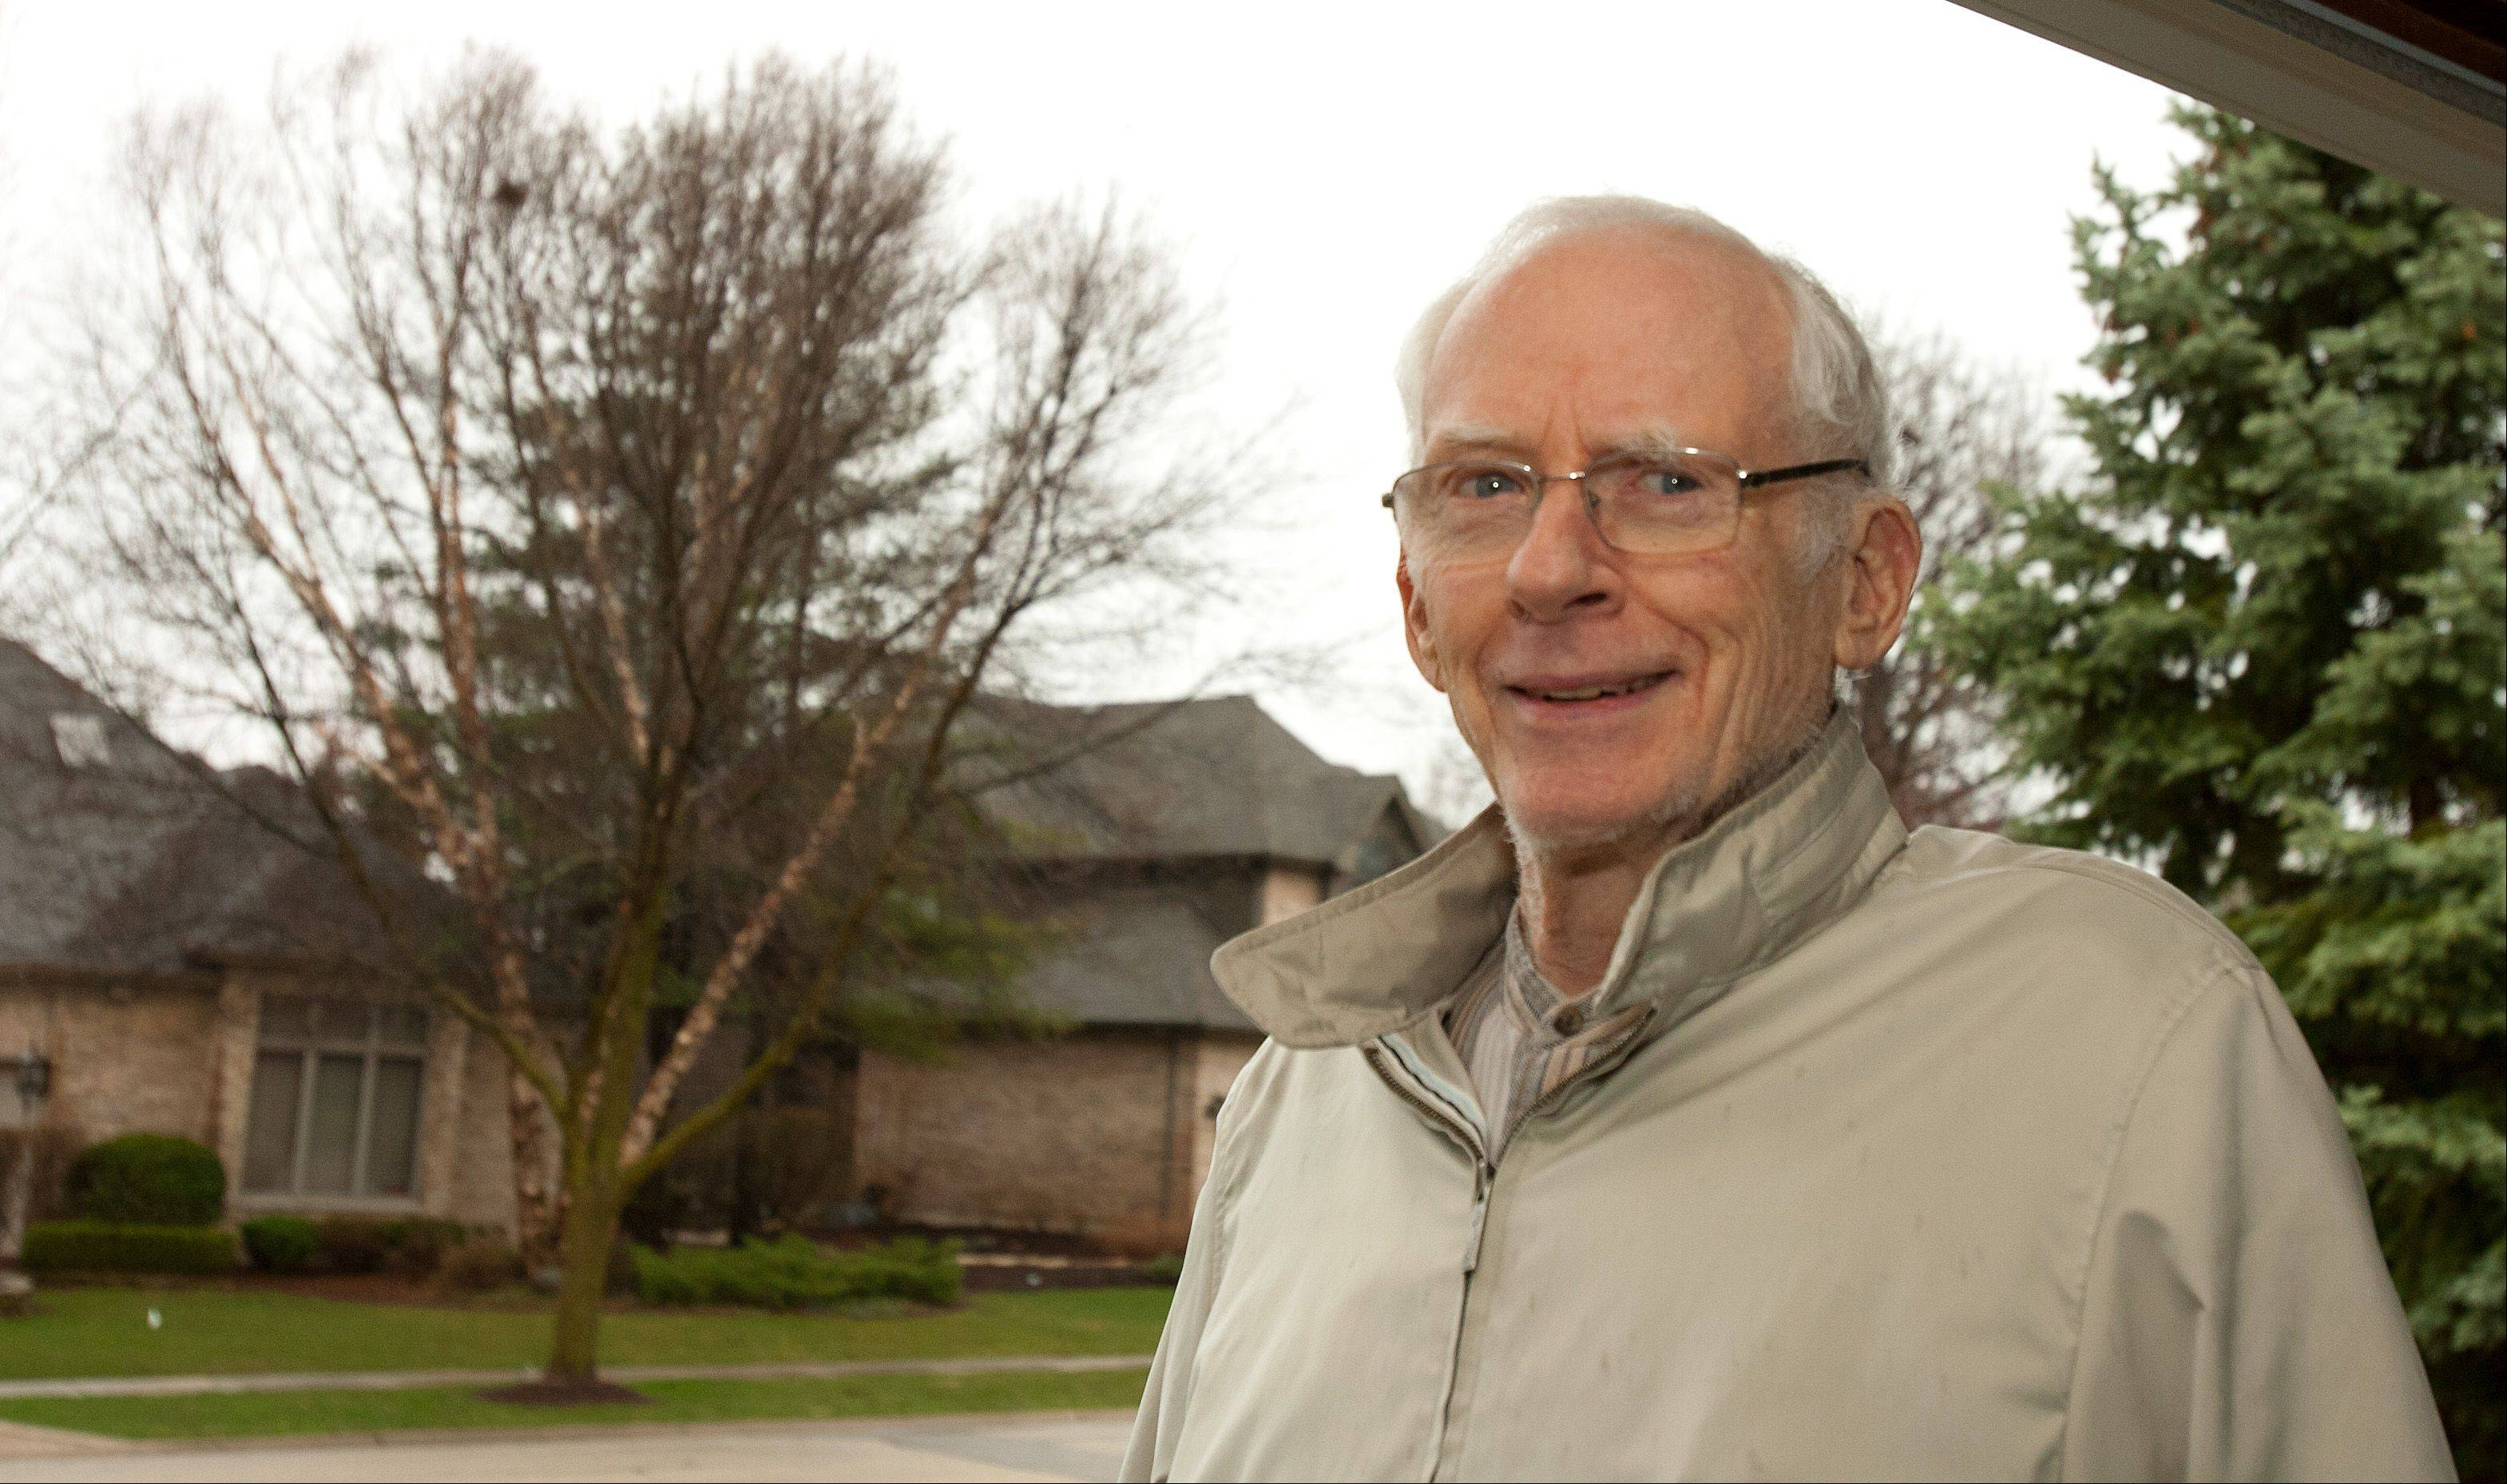 Stepping outside his Itasca home during one of the warmest and driest moments of last week, legendary TV meteorologist Harry Volkman says he appreciates all kinds of weather.